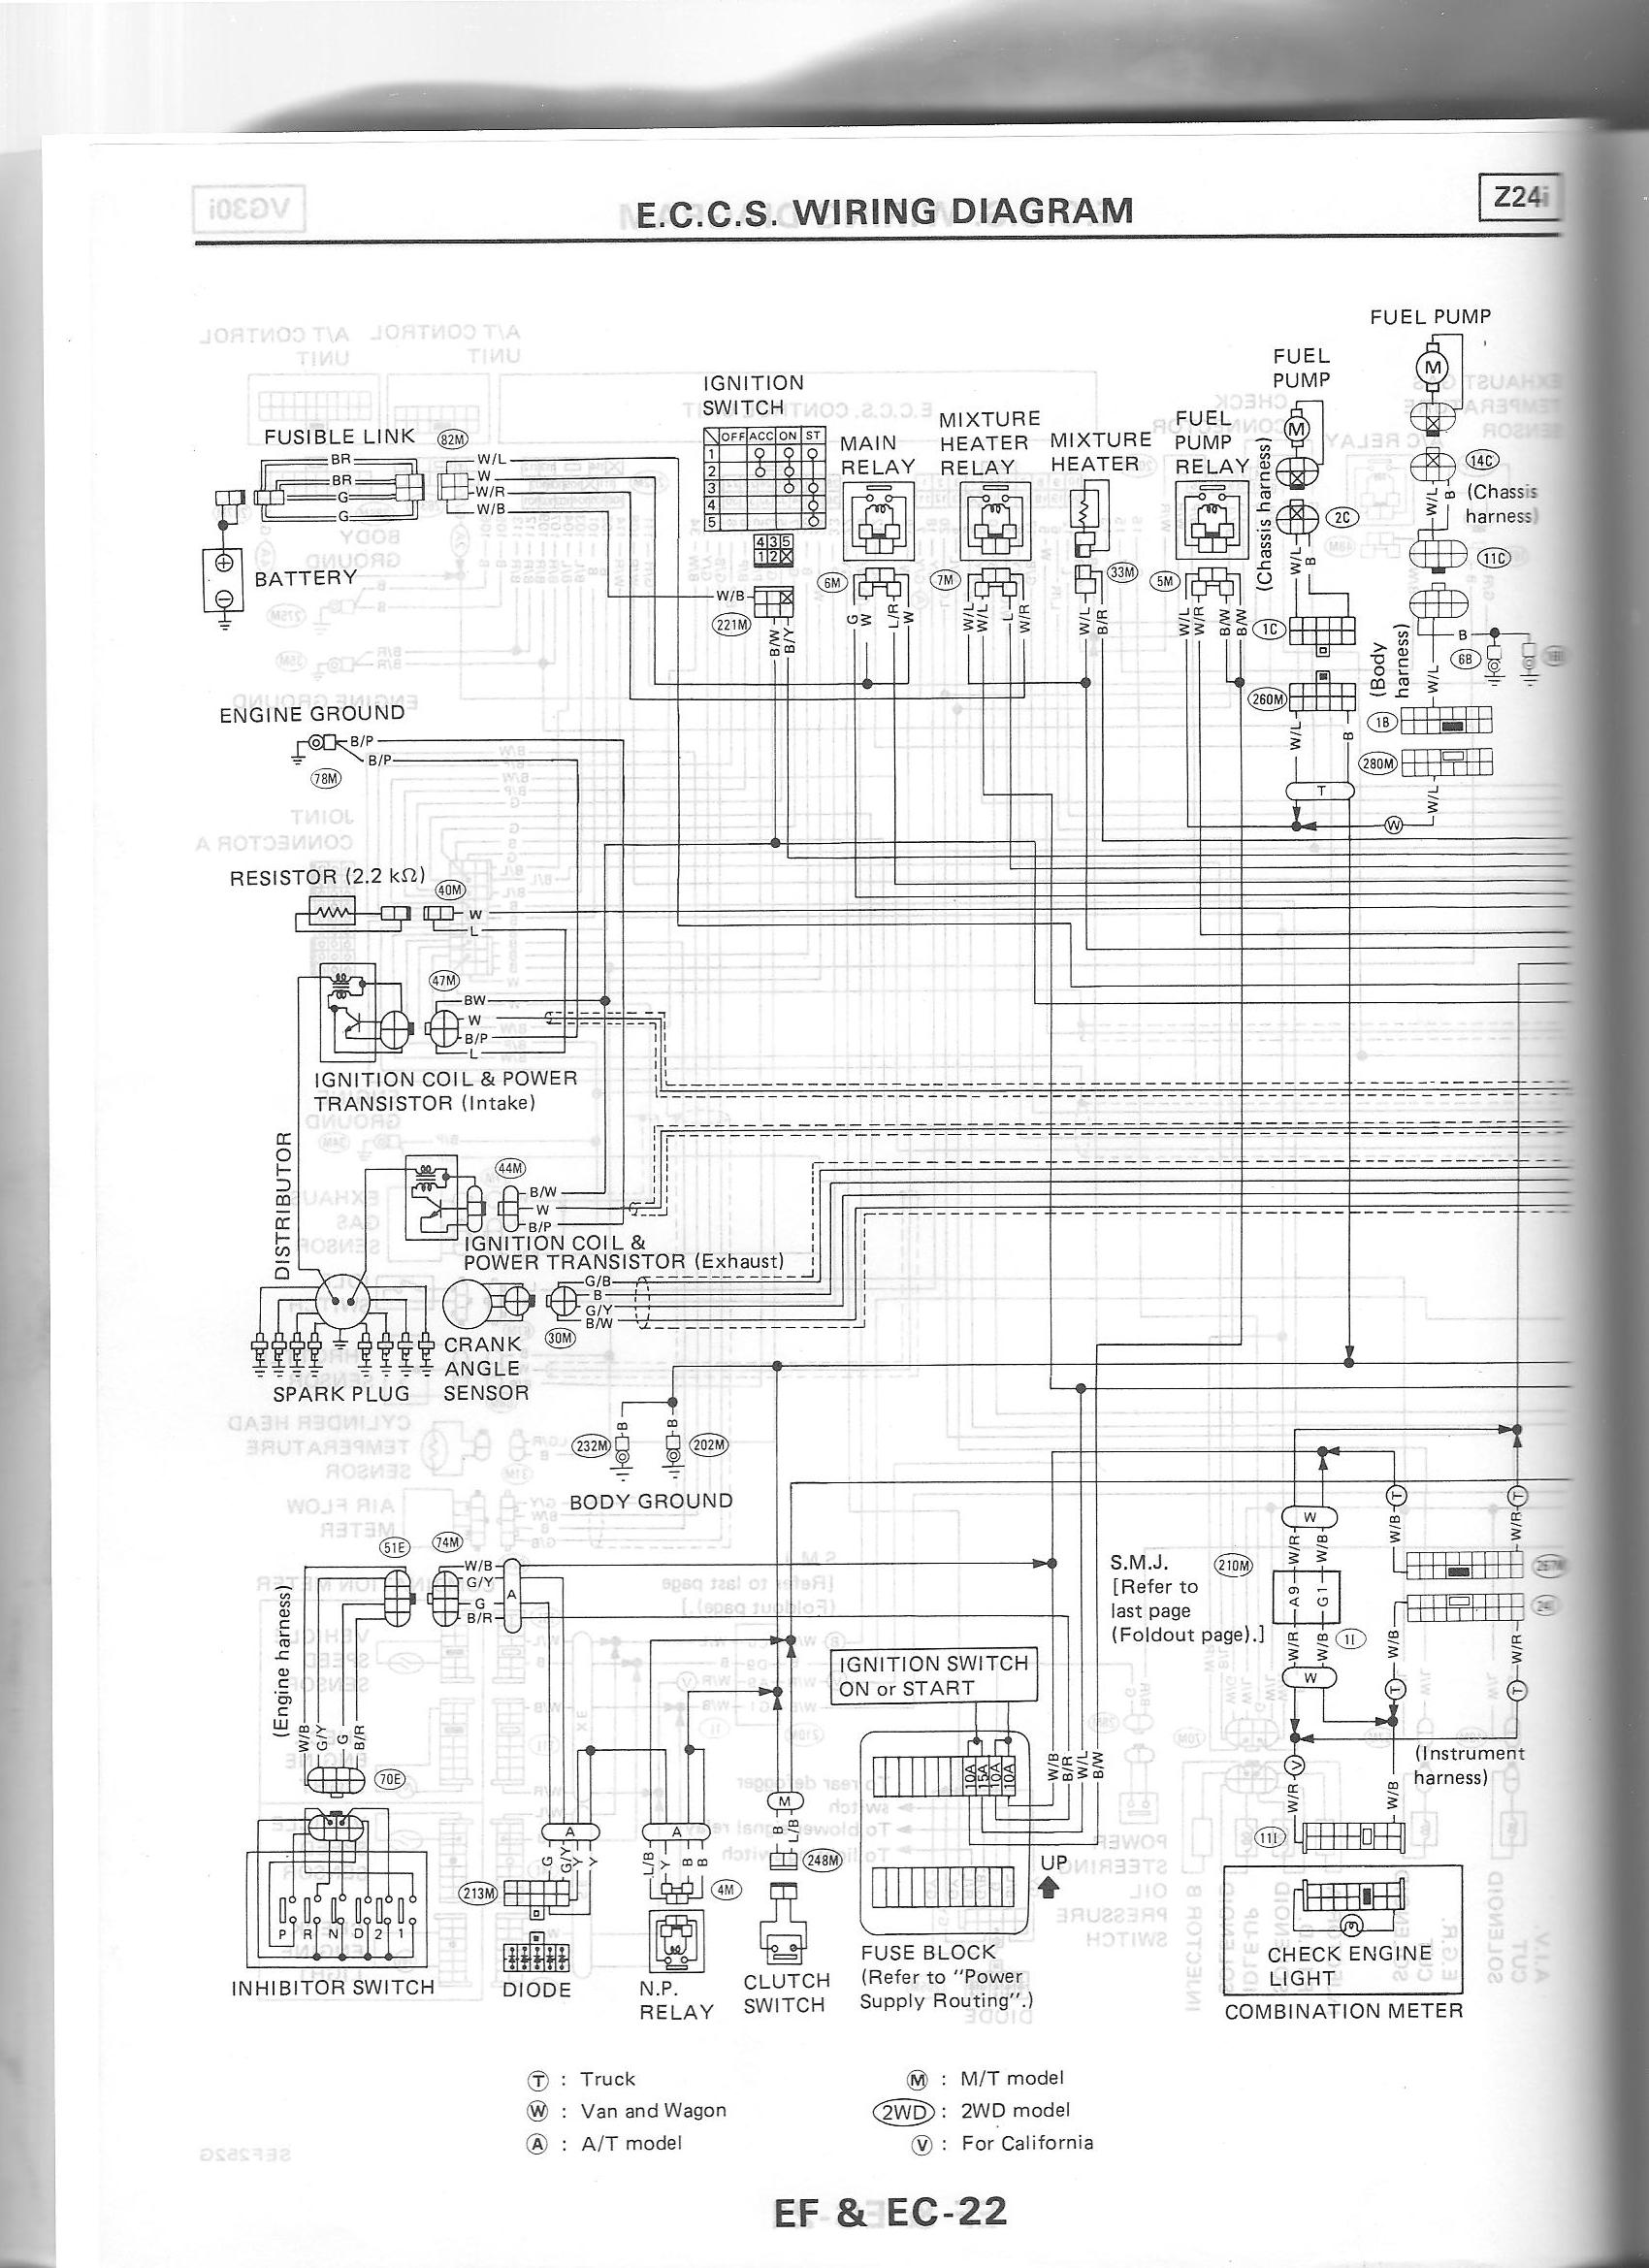 wiring1_88 nissan nut 1985 nissan 300zx wiring diagram at mifinder.co